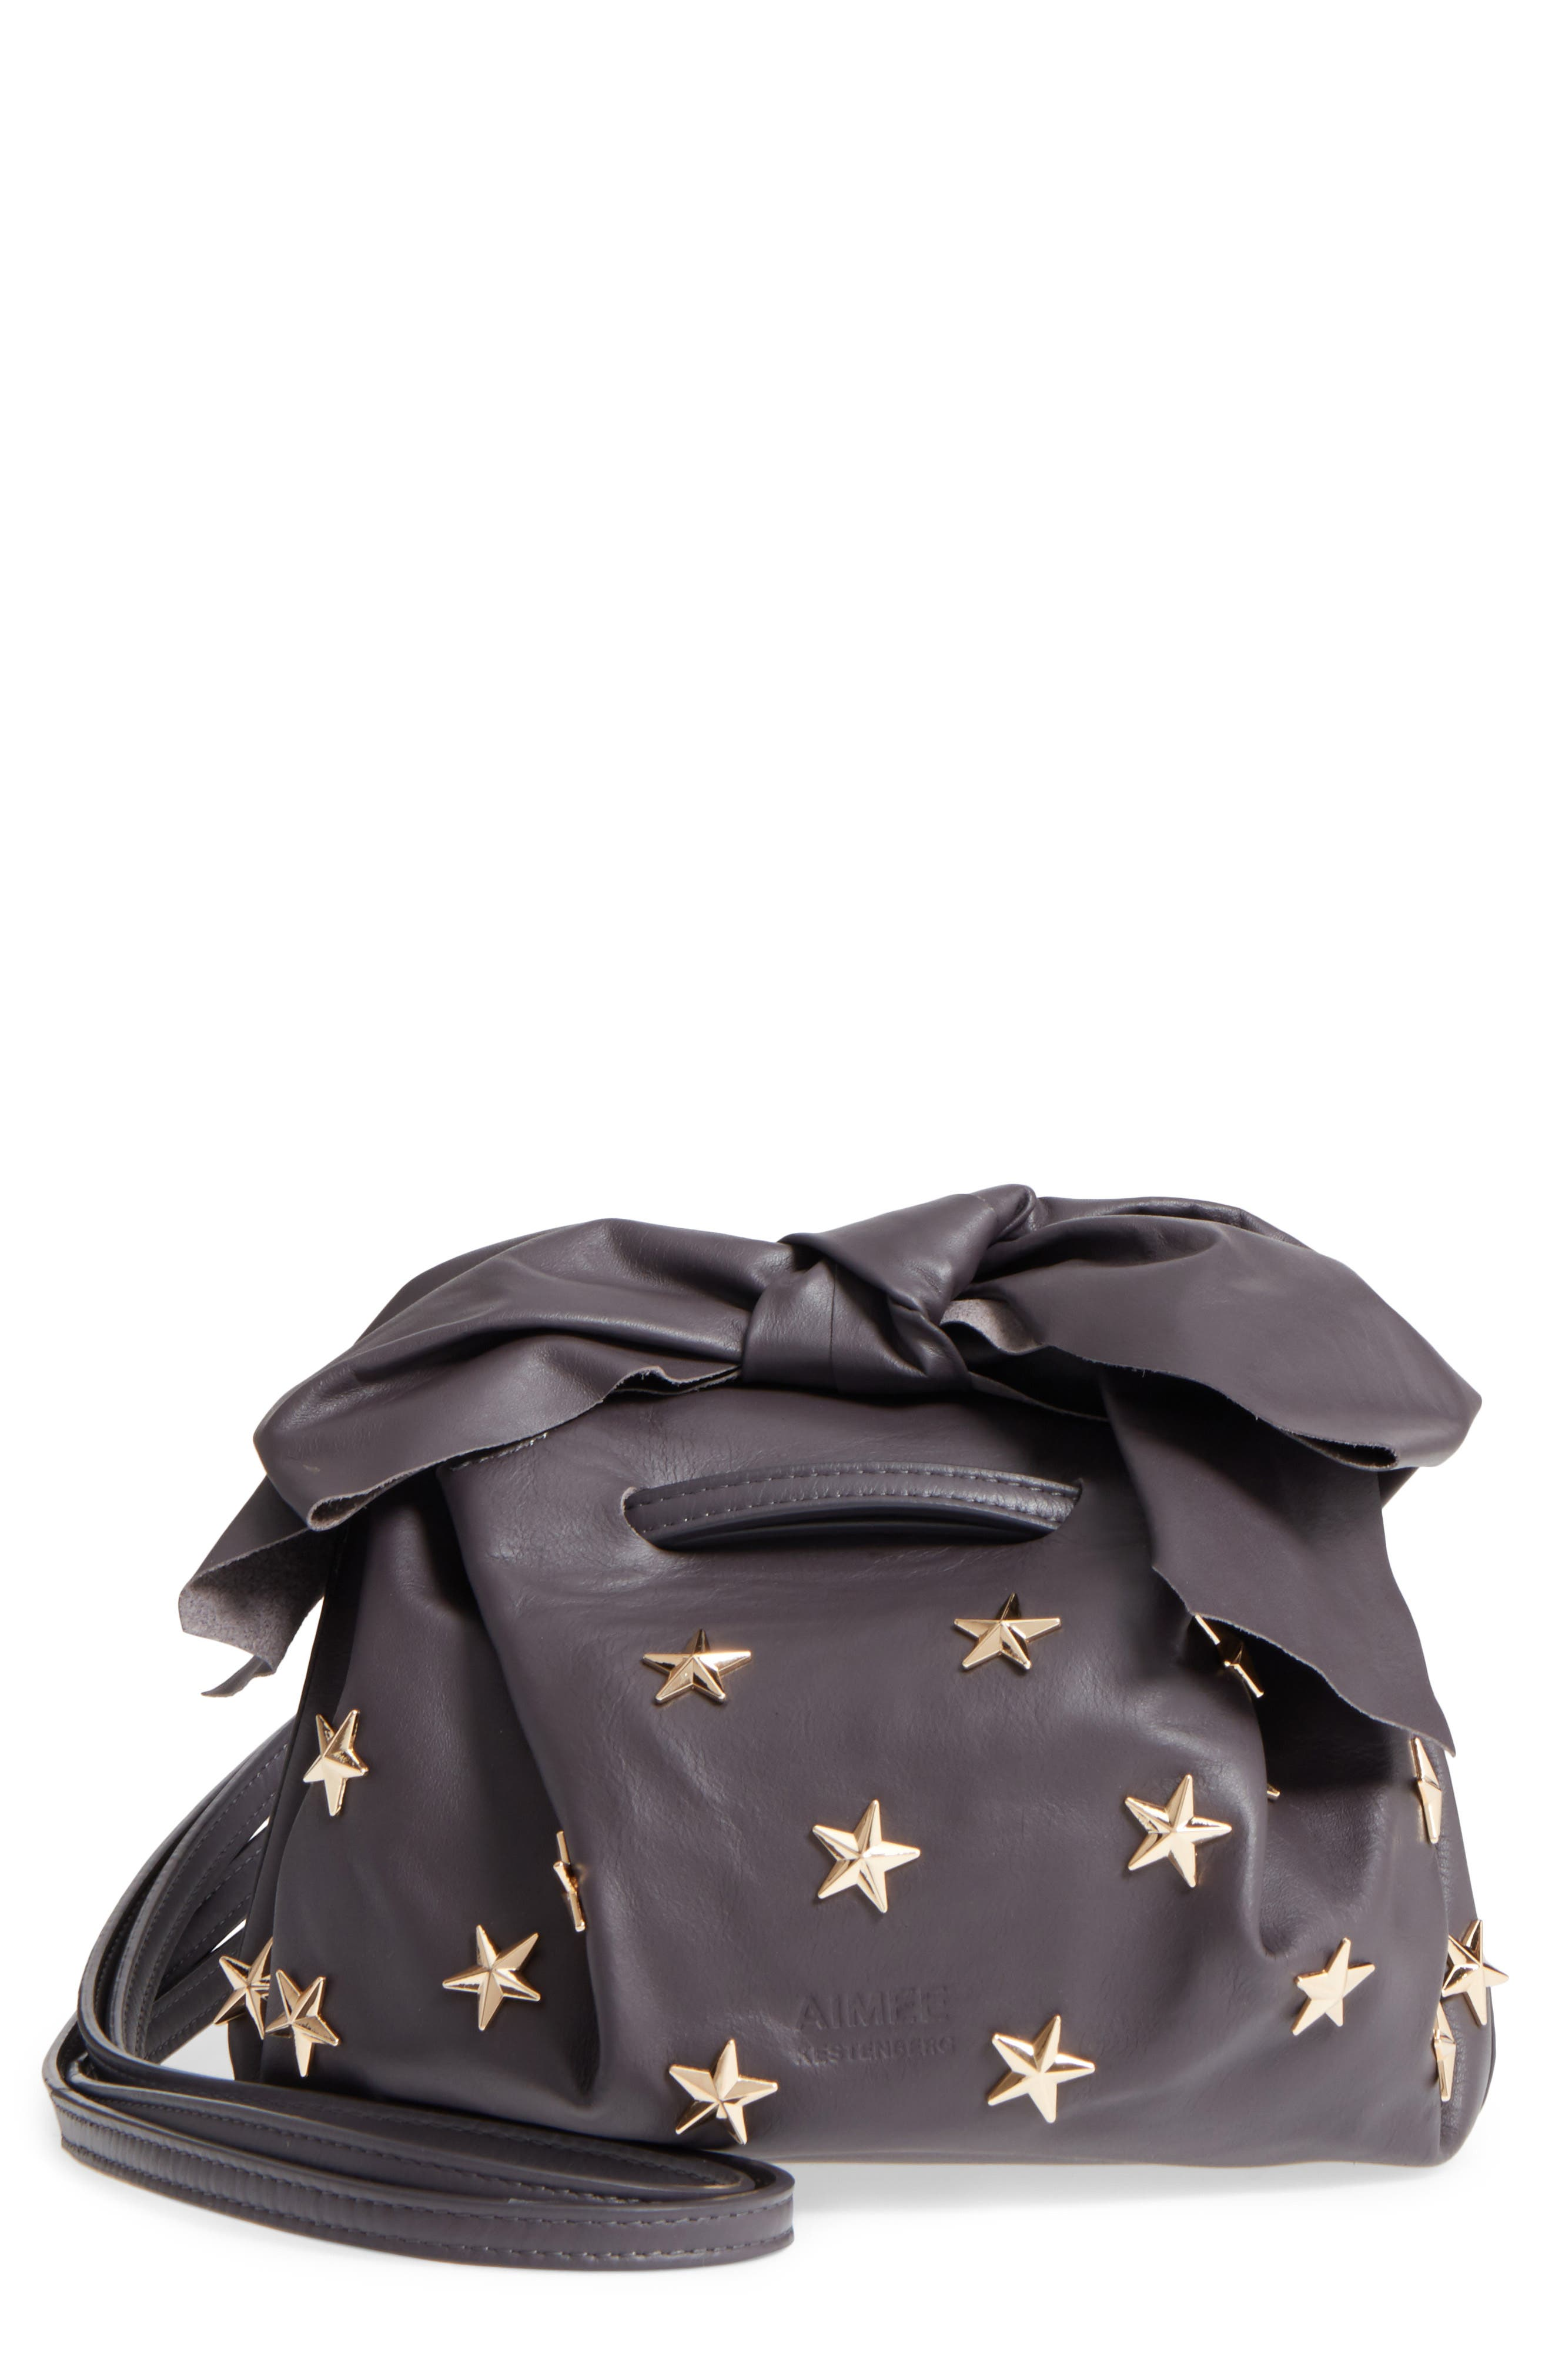 Soirée Star Stud Leather Crossbody Bag,                         Main,                         color, Shadow